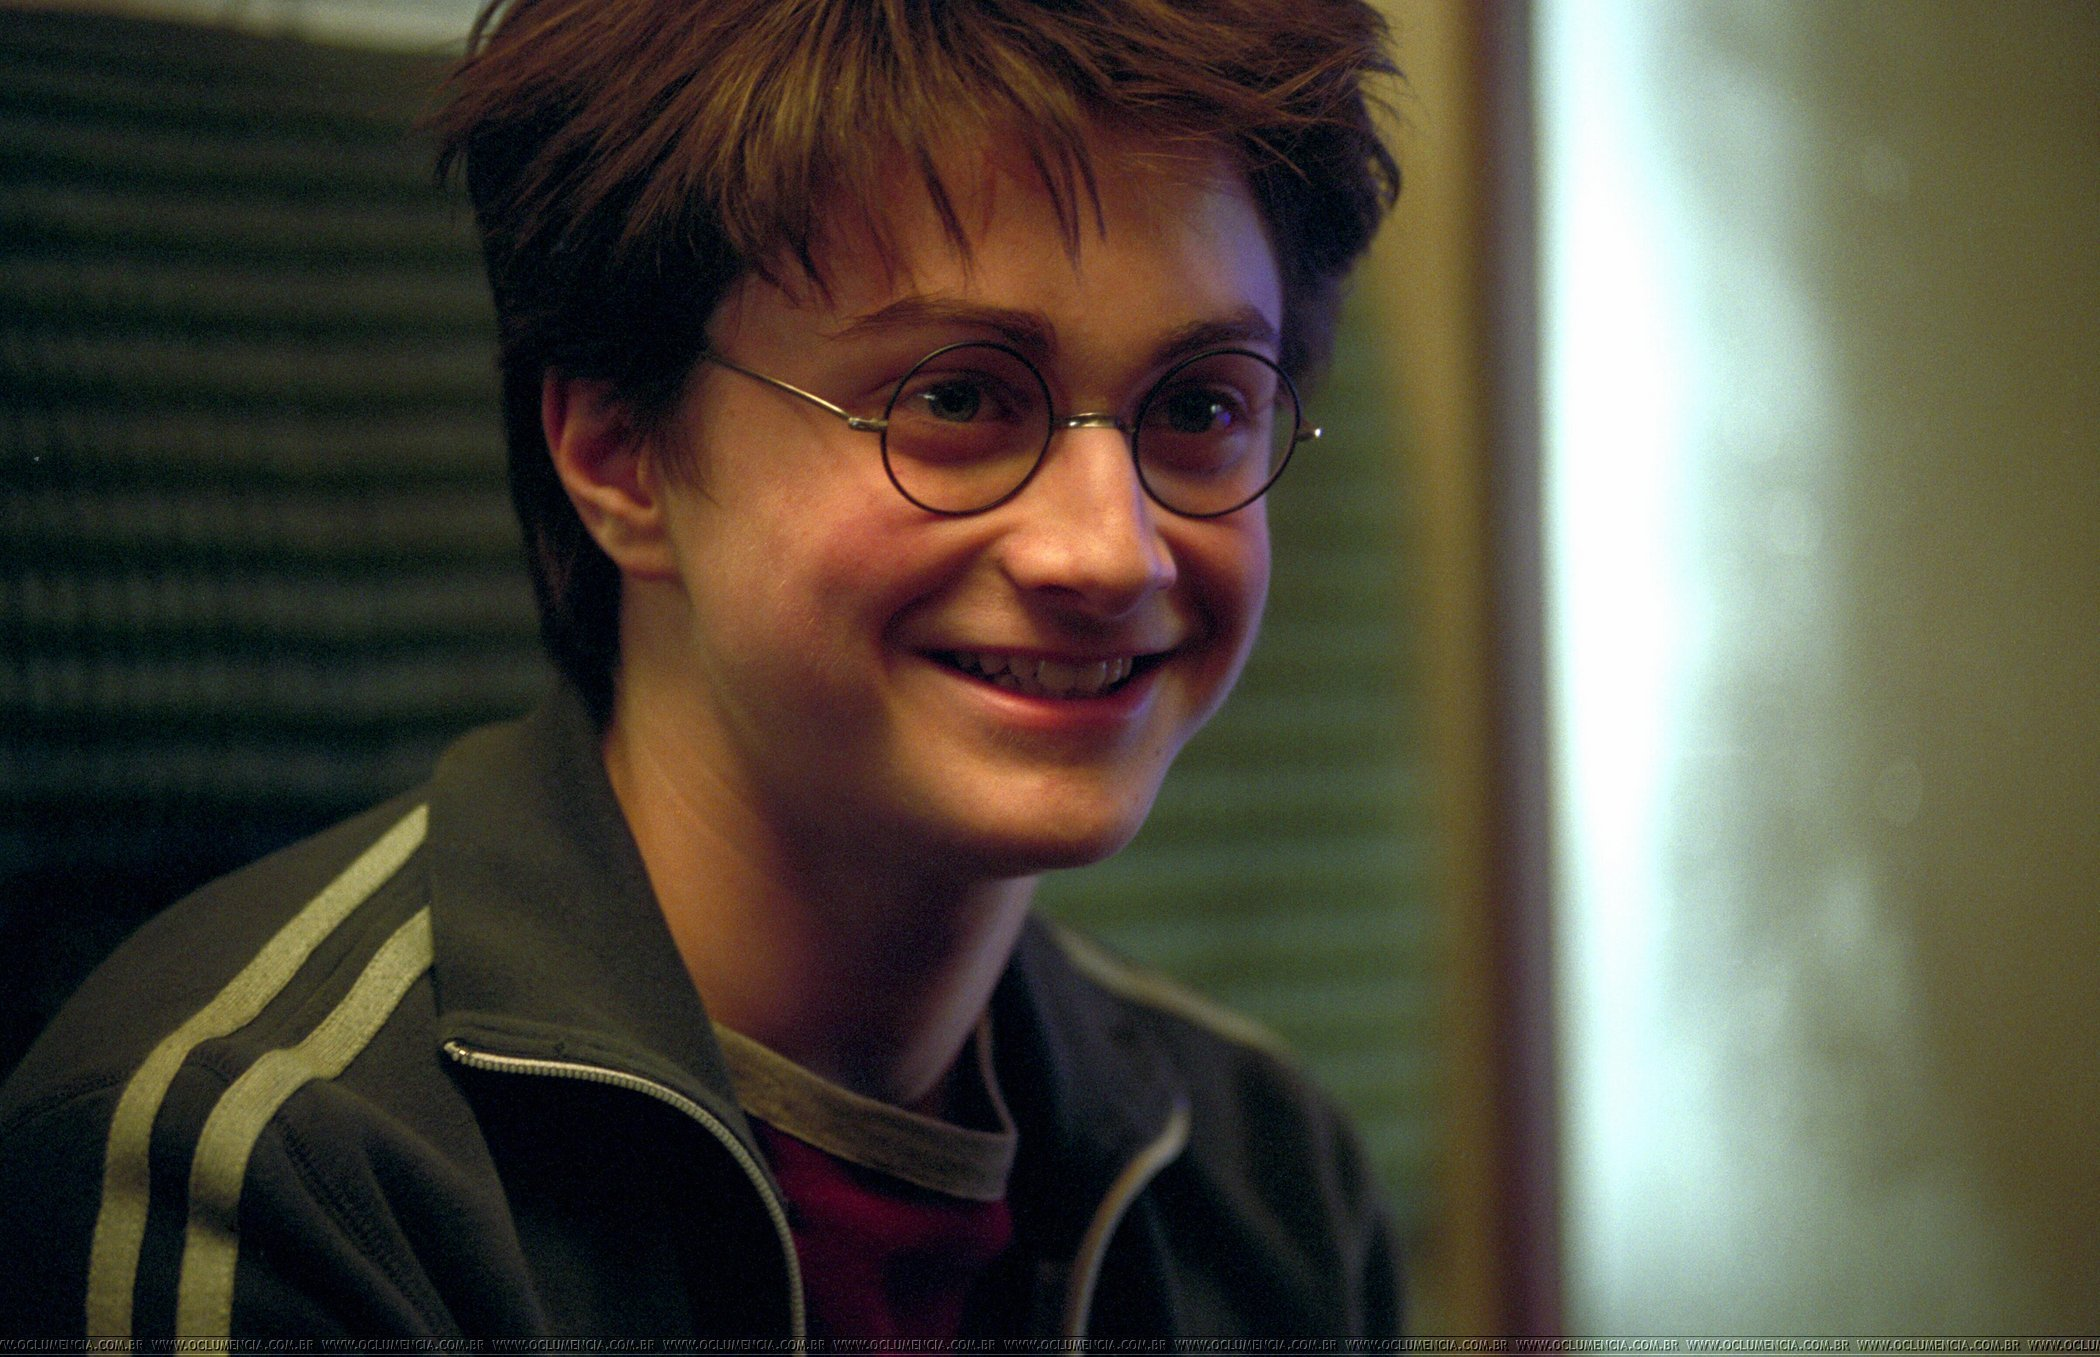 Harry Potter image Harry Potter and the Prisoner of Azkaban HD